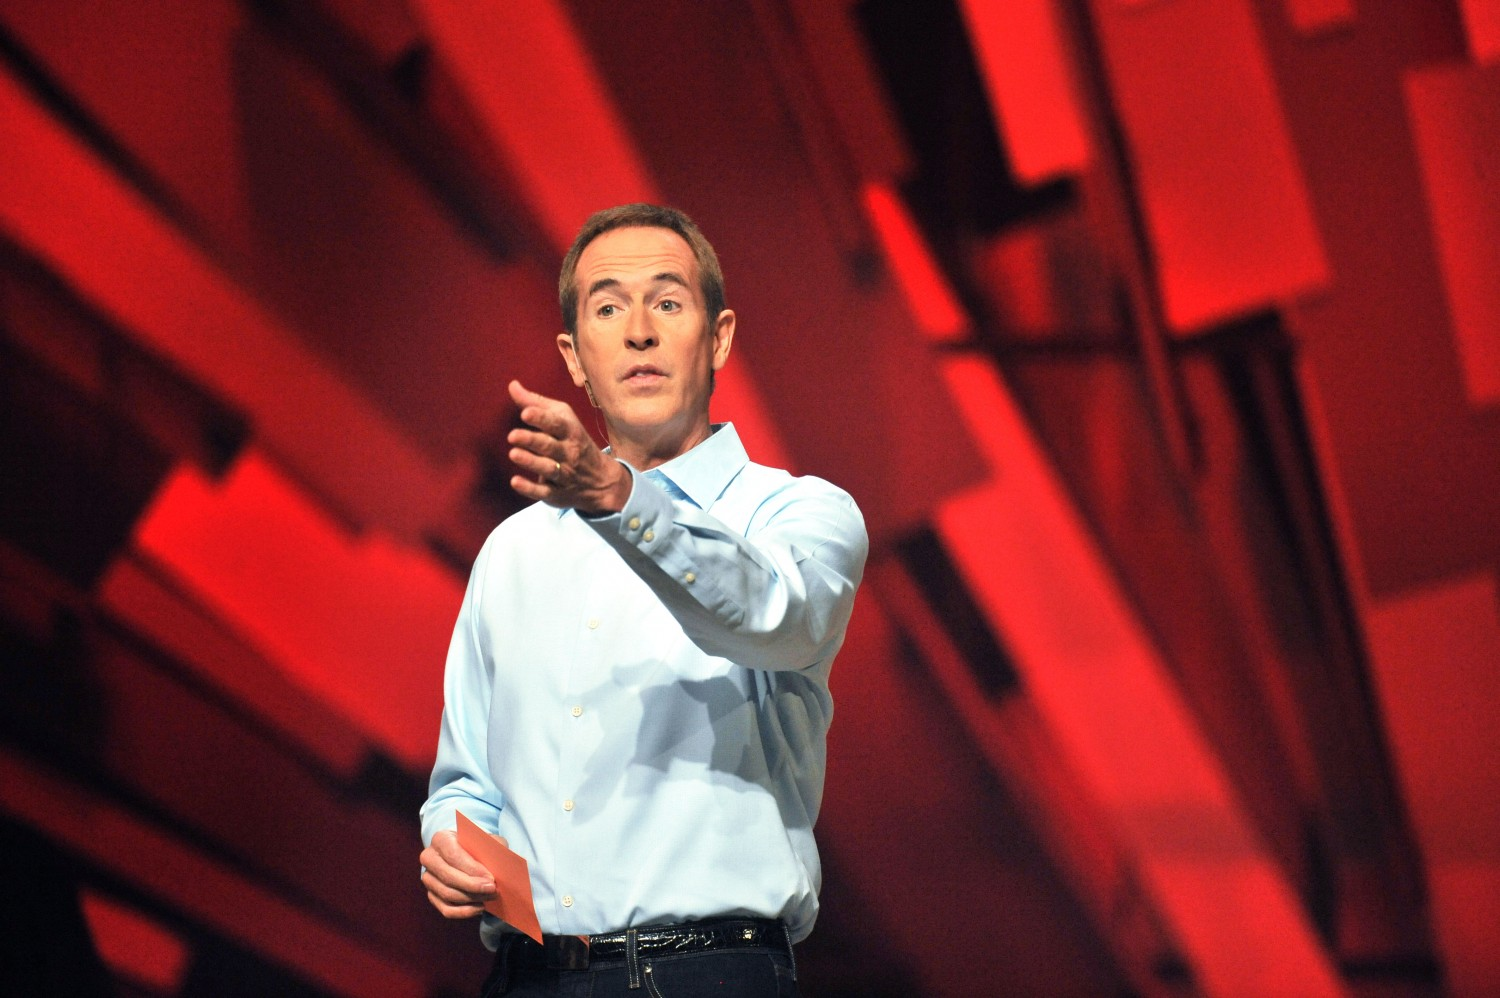 30 ANDY STANLEY TAKEAWAYS ON LIFE'S MEANING